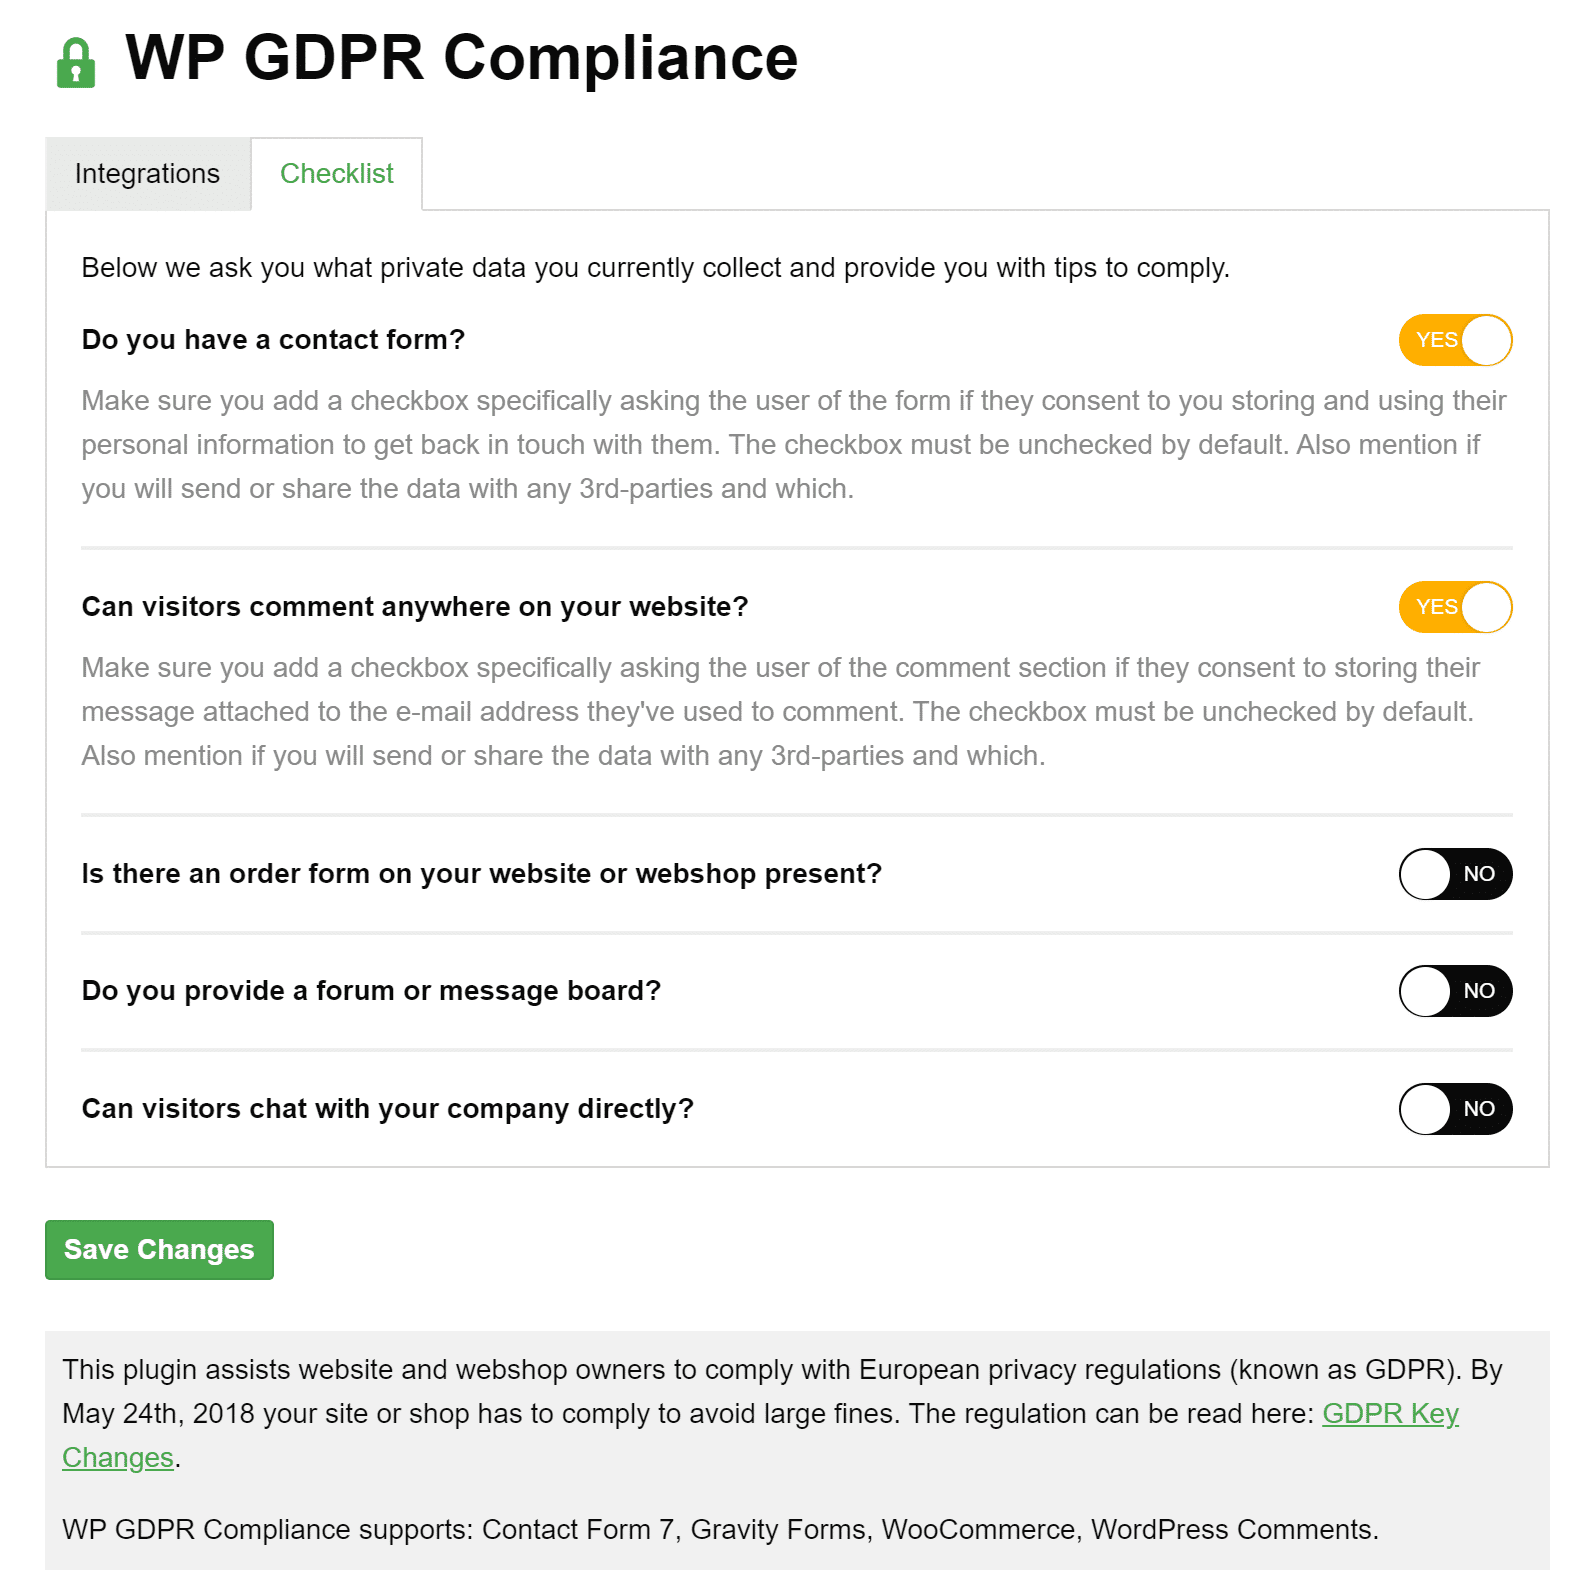 WP GDPR Compliance